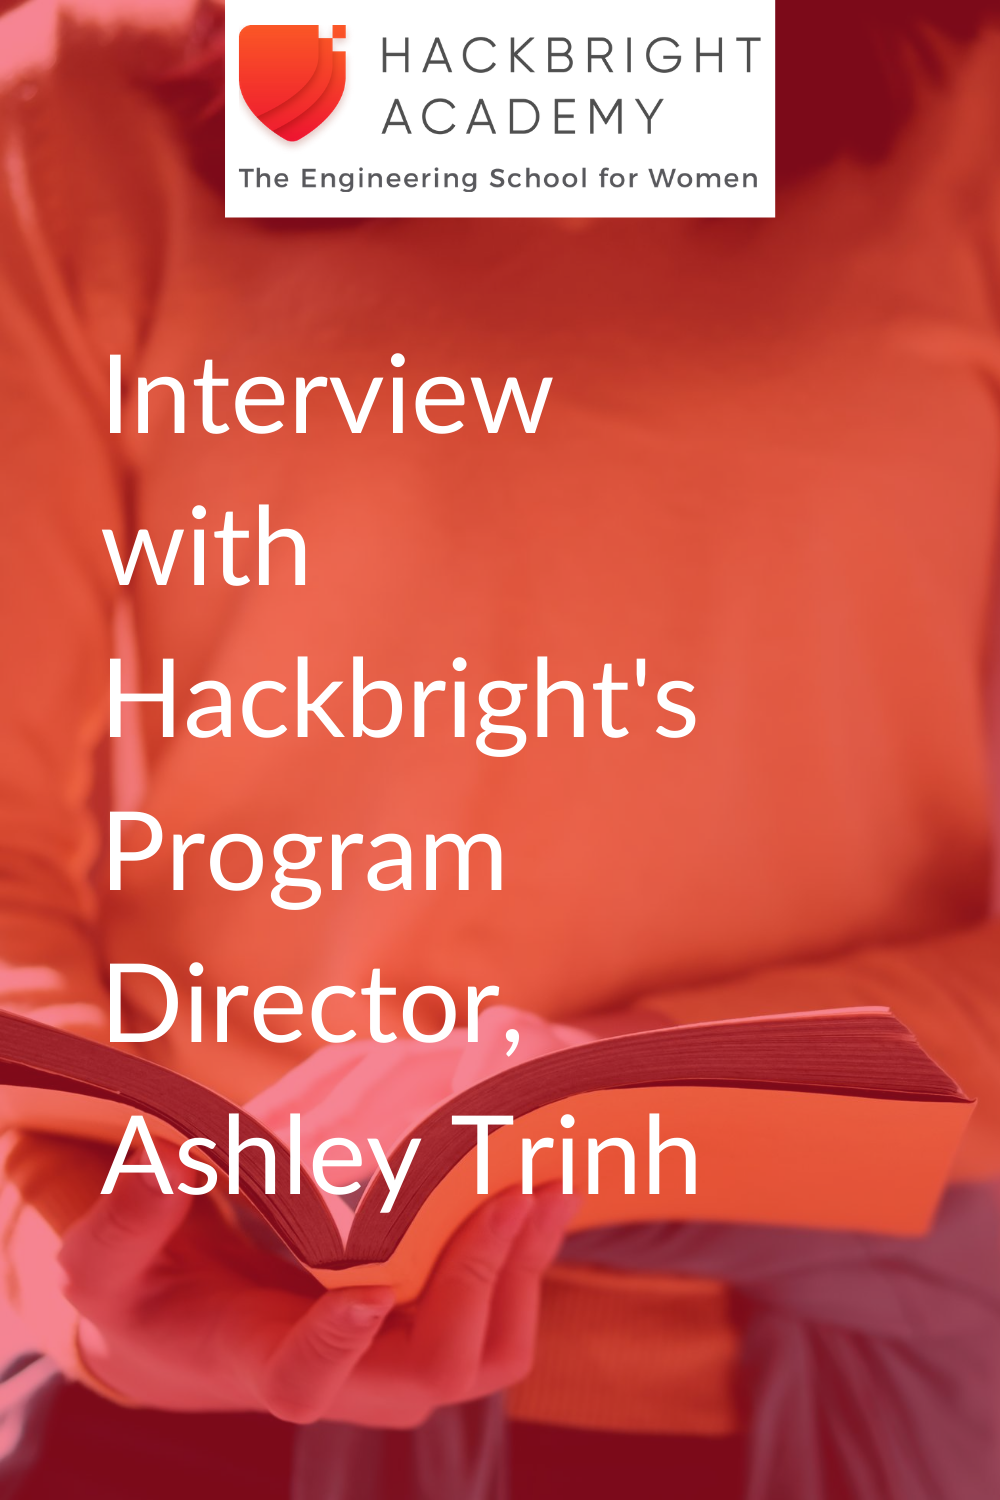 Interview with Hackbright's Program Director, Ashley Trinh